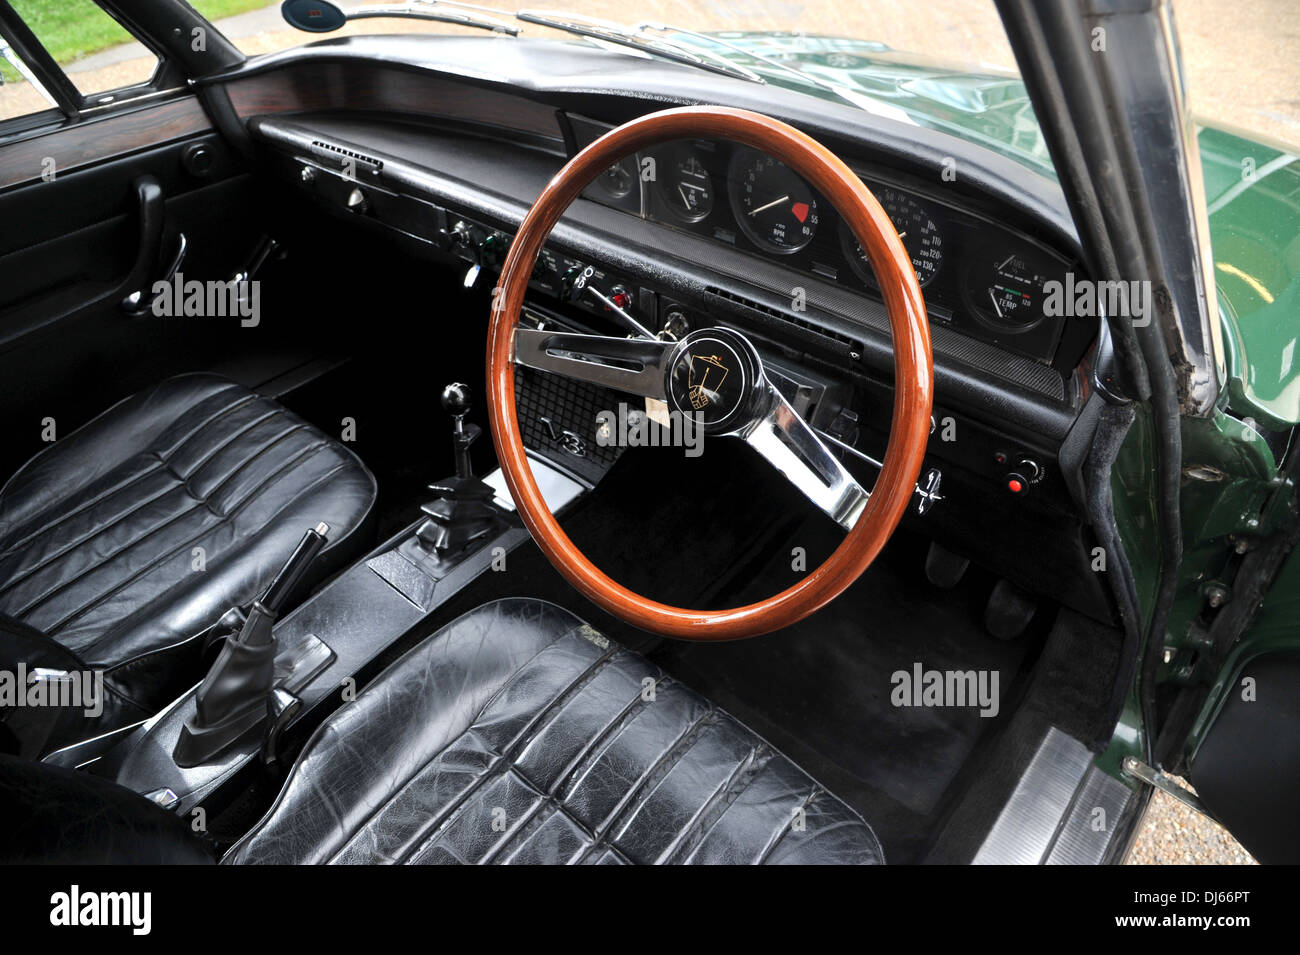 1972 rover 3500s p6 british classic sports saloon car interior stock photo royalty free image. Black Bedroom Furniture Sets. Home Design Ideas